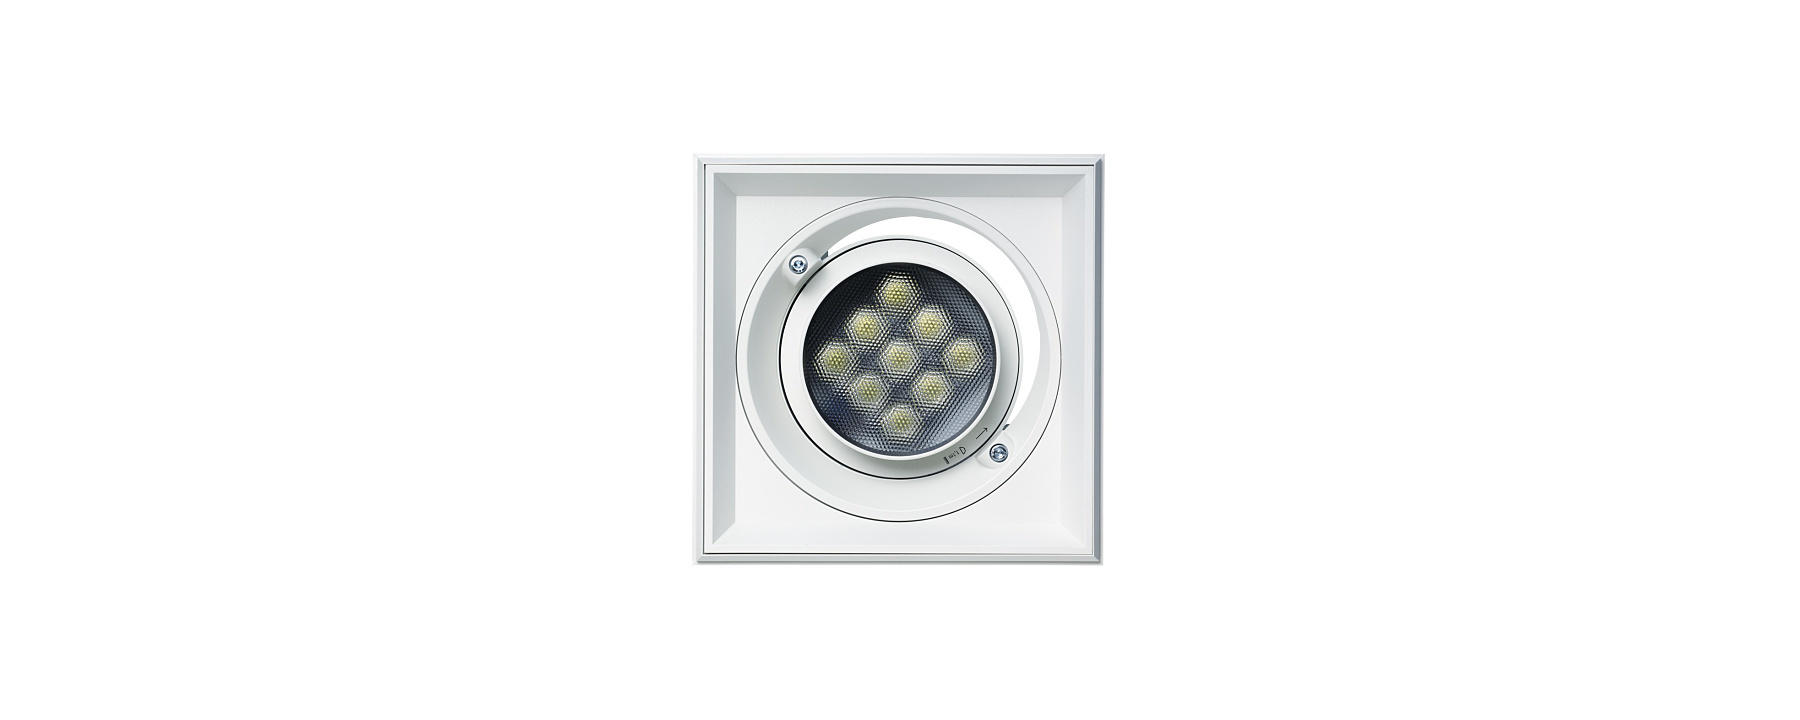 Quintessence square - Recessed spotlights, recessed floodlights and recessed wallwashers